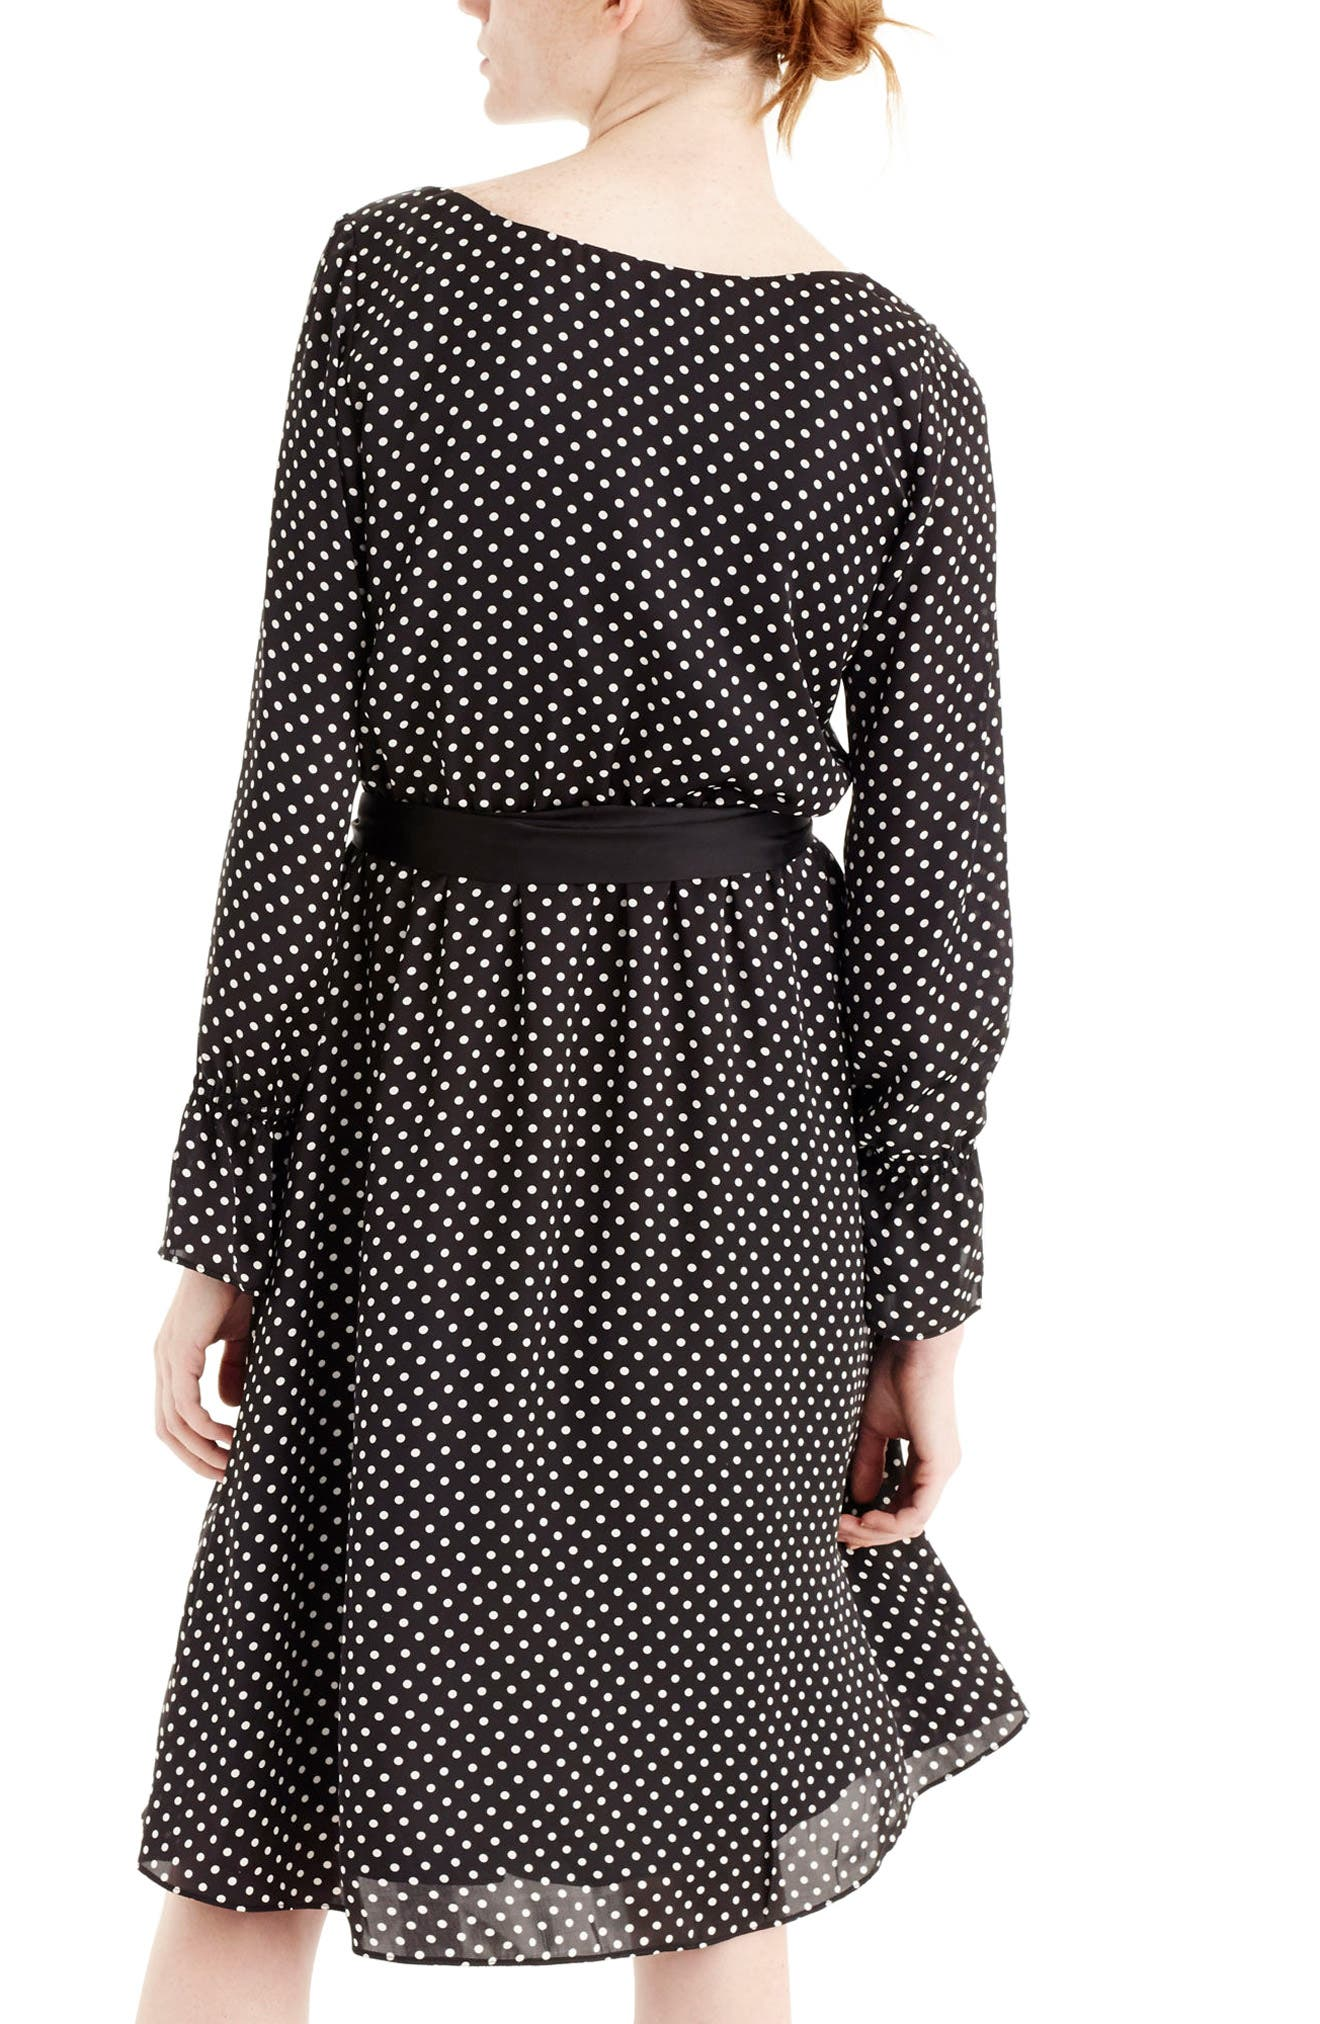 Alternate Image 2  - J.Crew Long Sleeve Polka Dot Dress